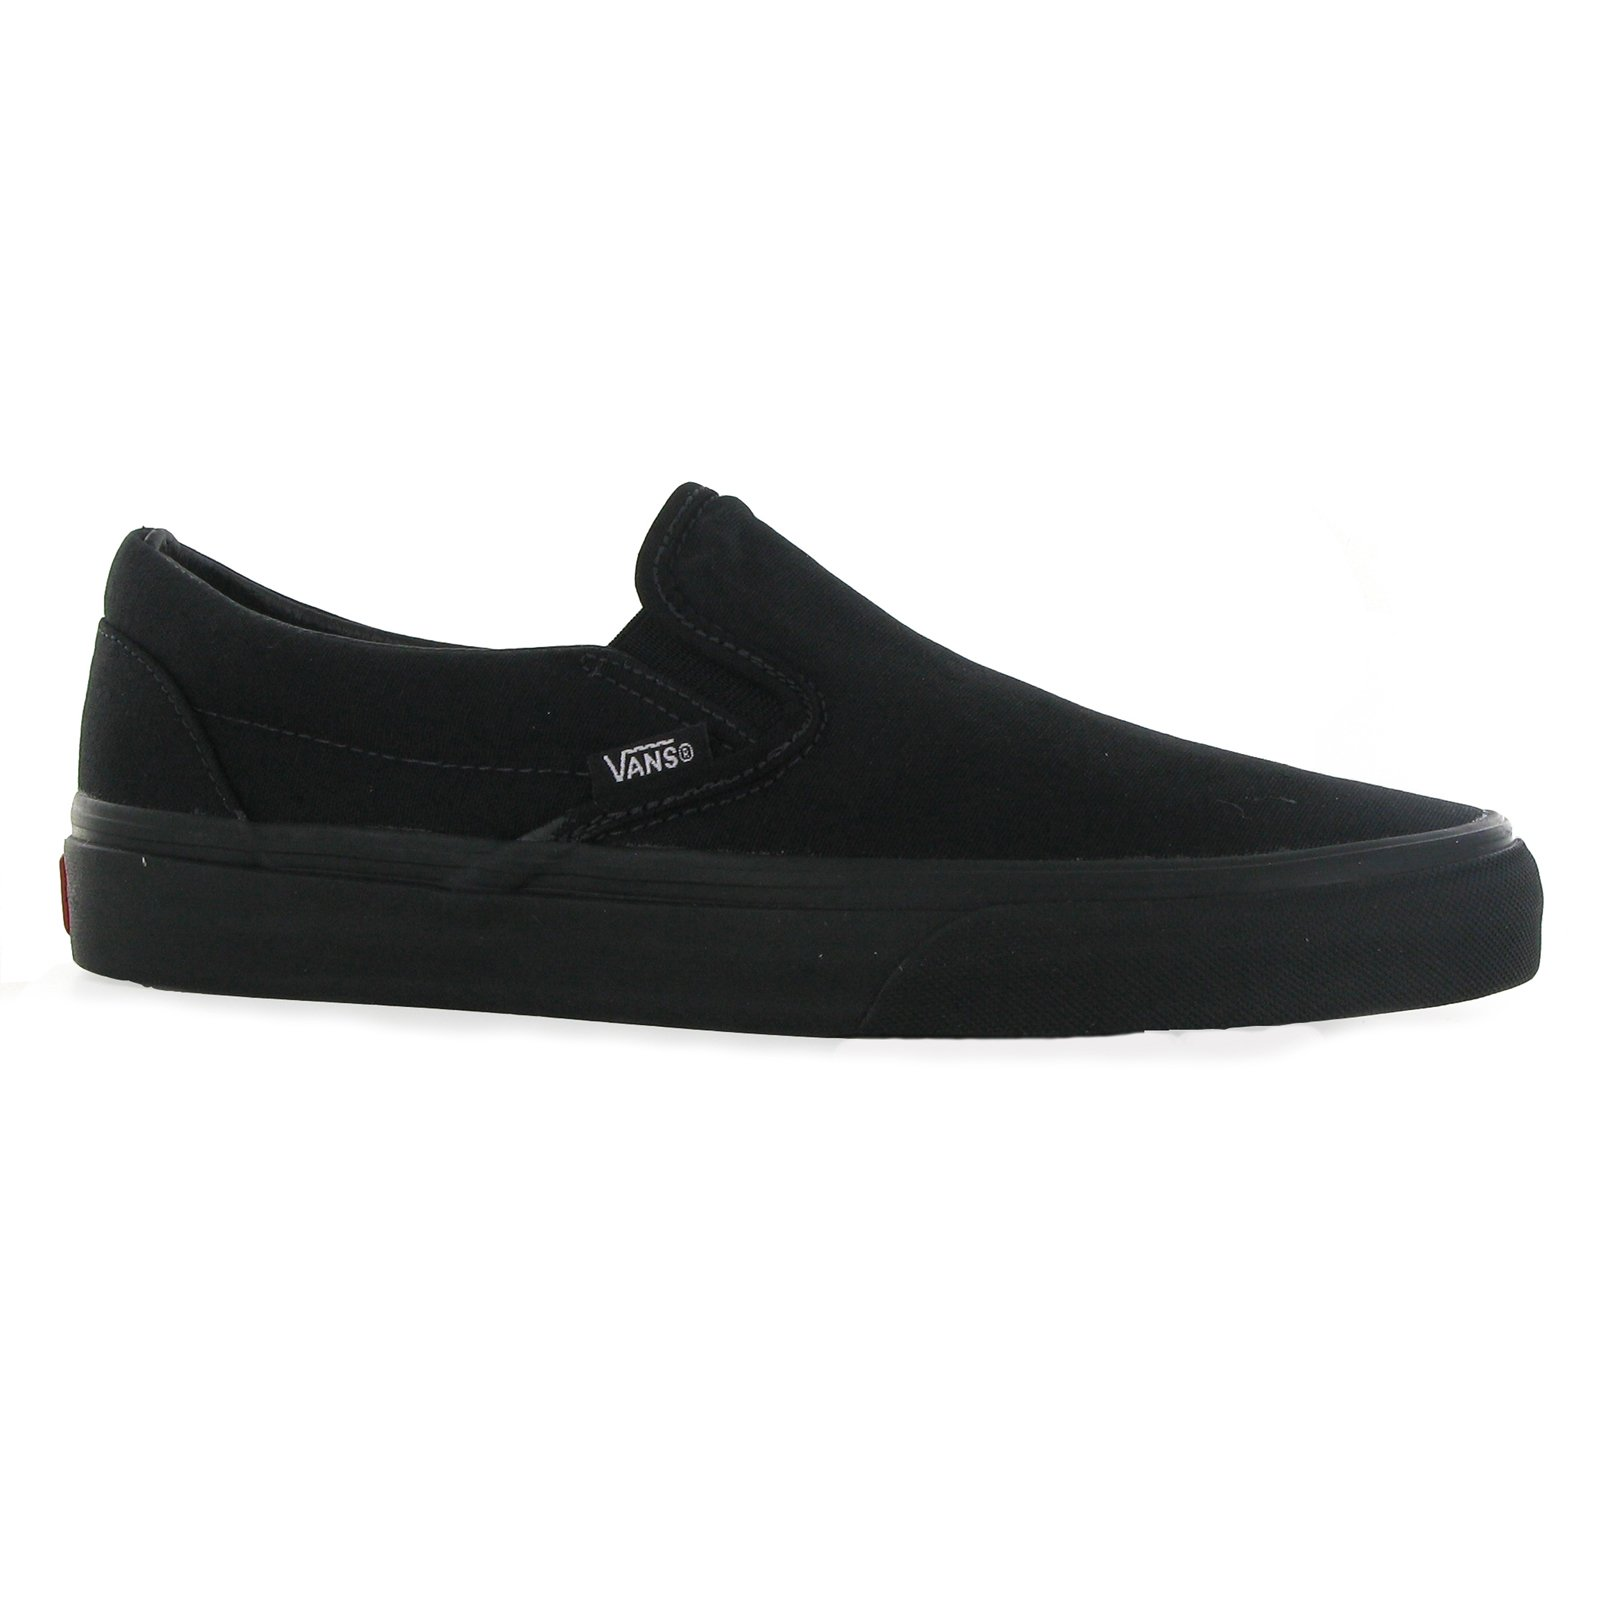 Vans U Classic Slip-On Black/Black VN000EYEBKA 8 B(M) US Women / 6.5 D(M) US Men